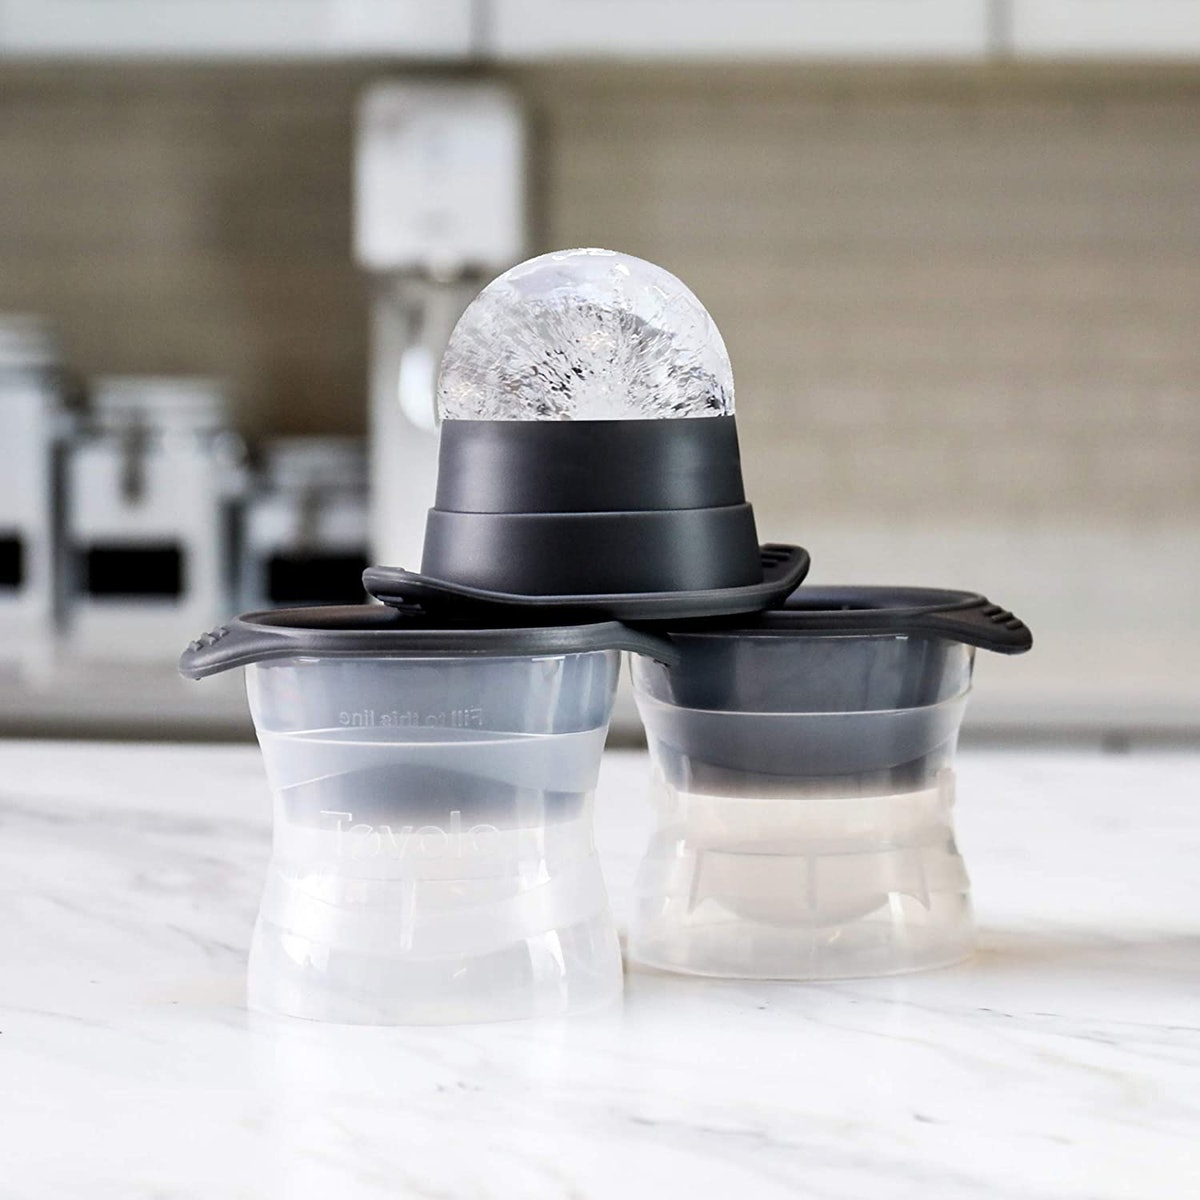 Tovolo Sphere Ice Molds (2-Pack)